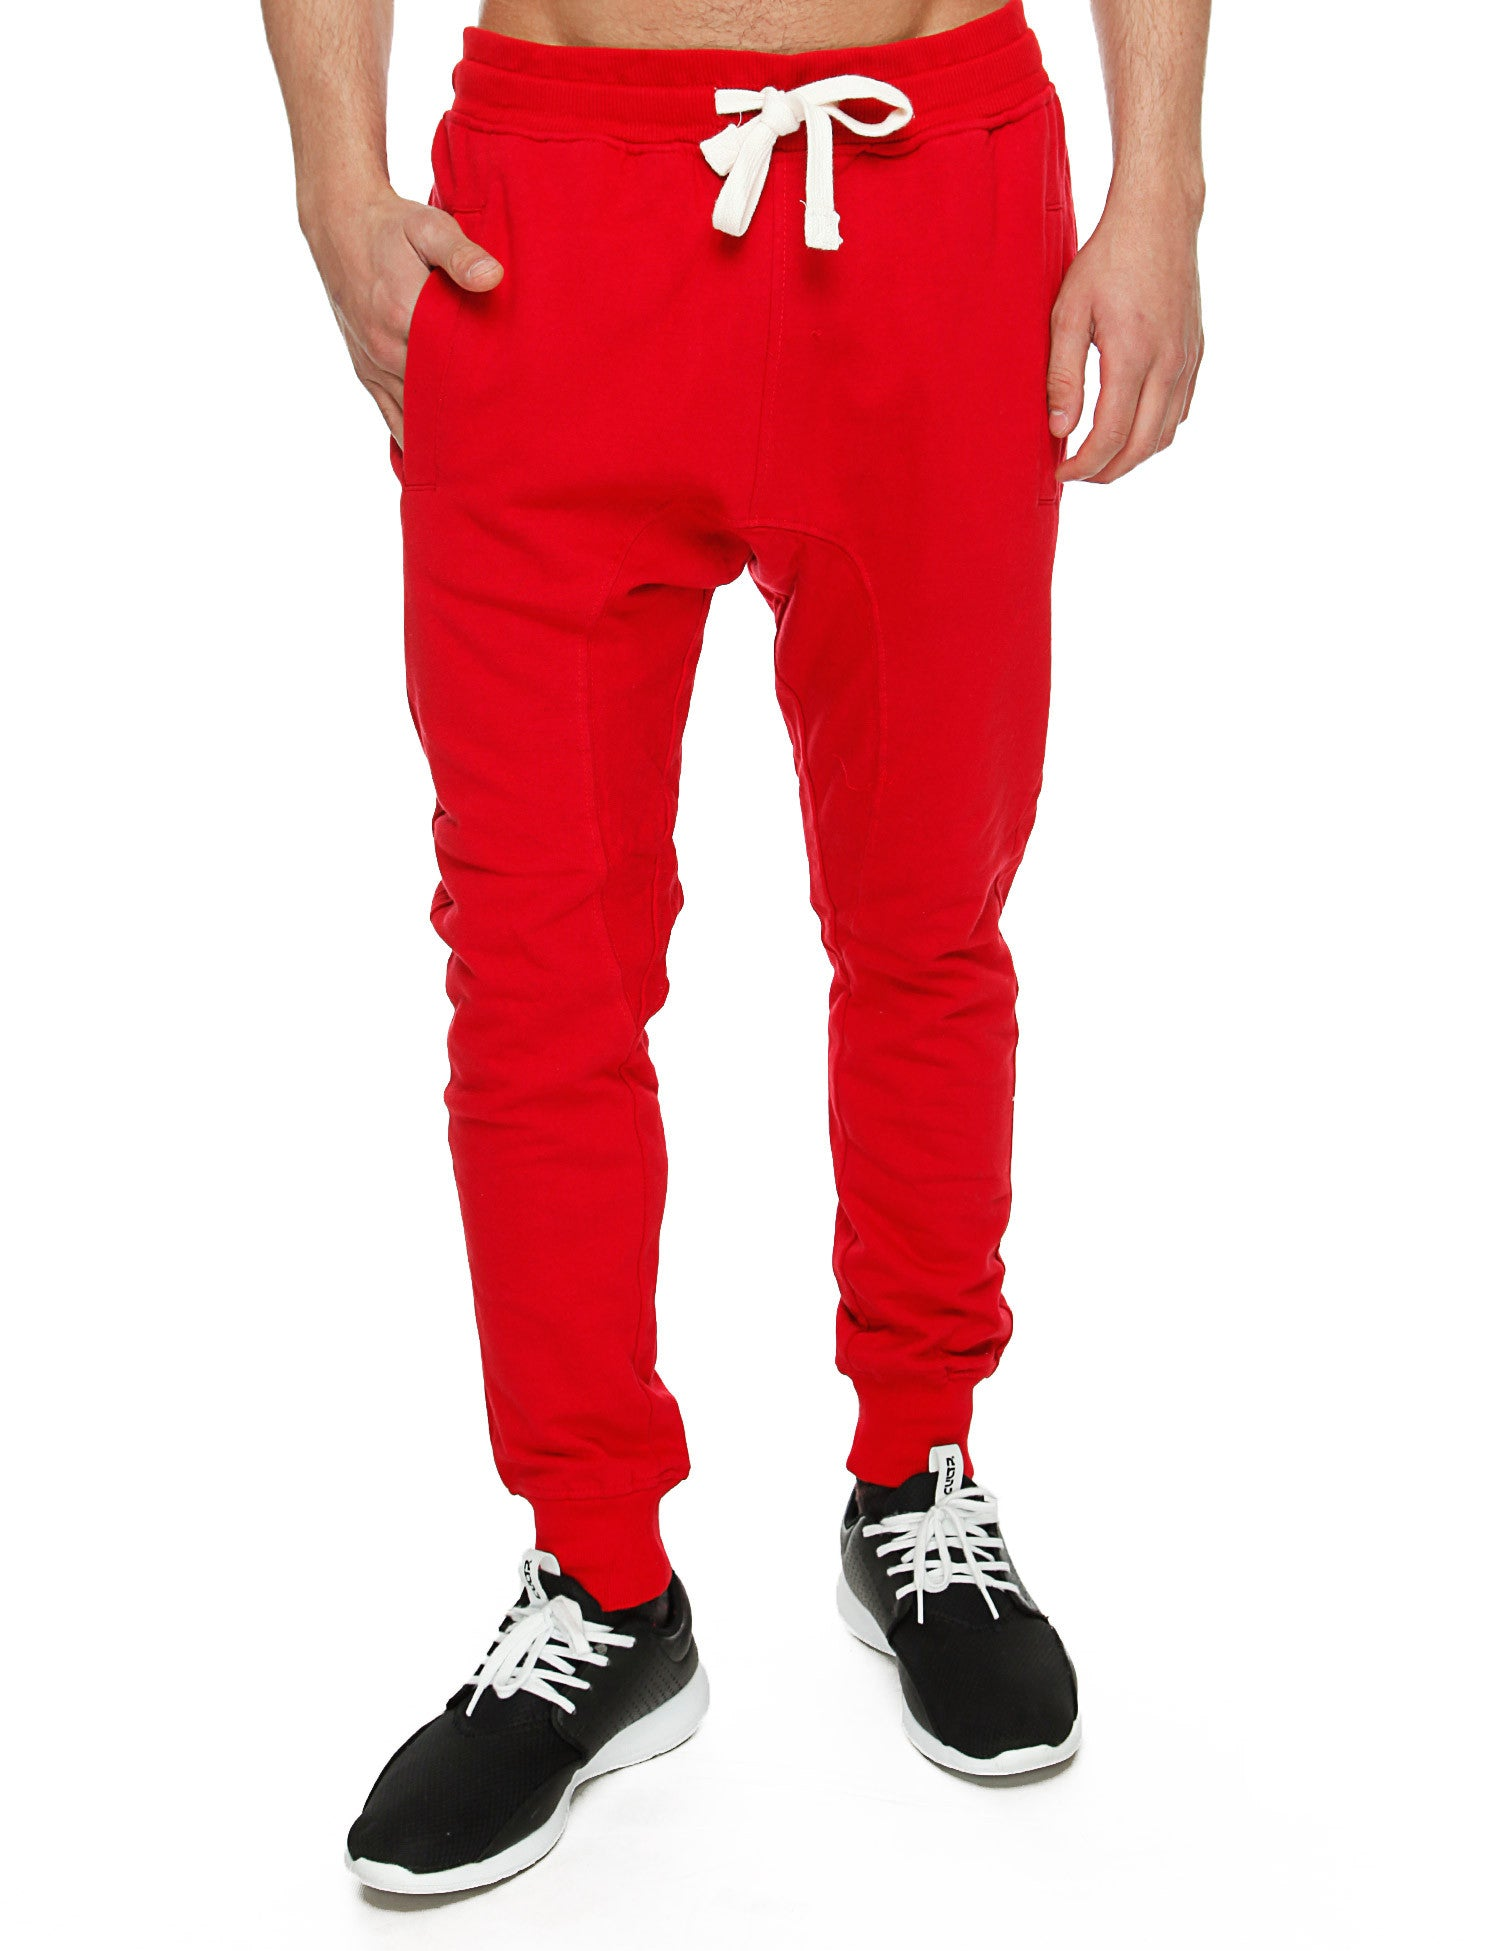 Imperious Sweatpant FP10 Red